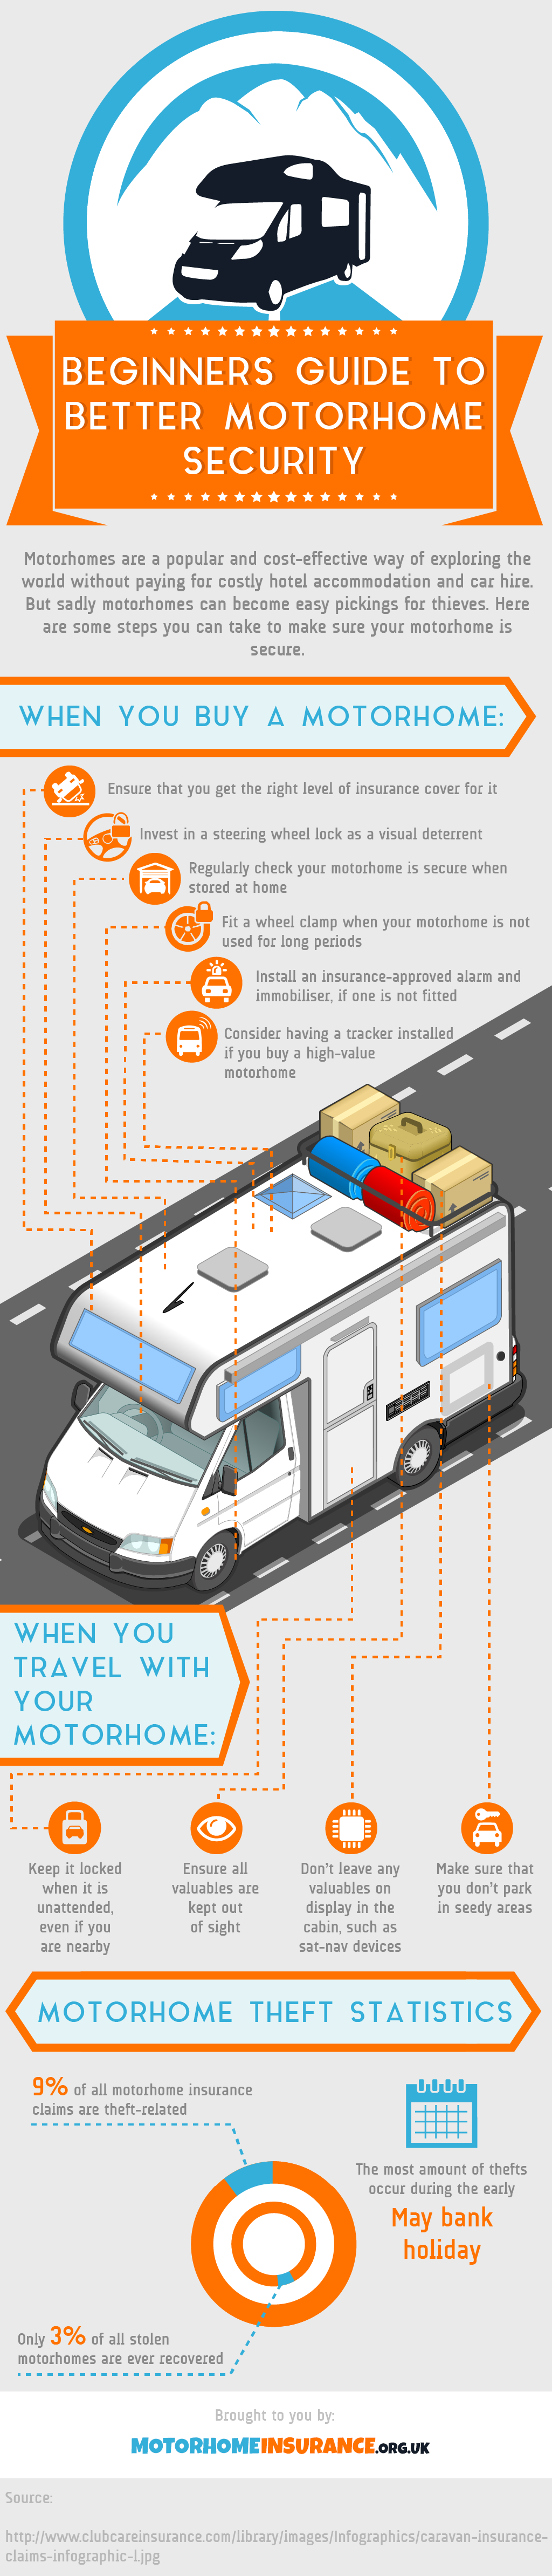 Beginners Guide to Motorhome Security